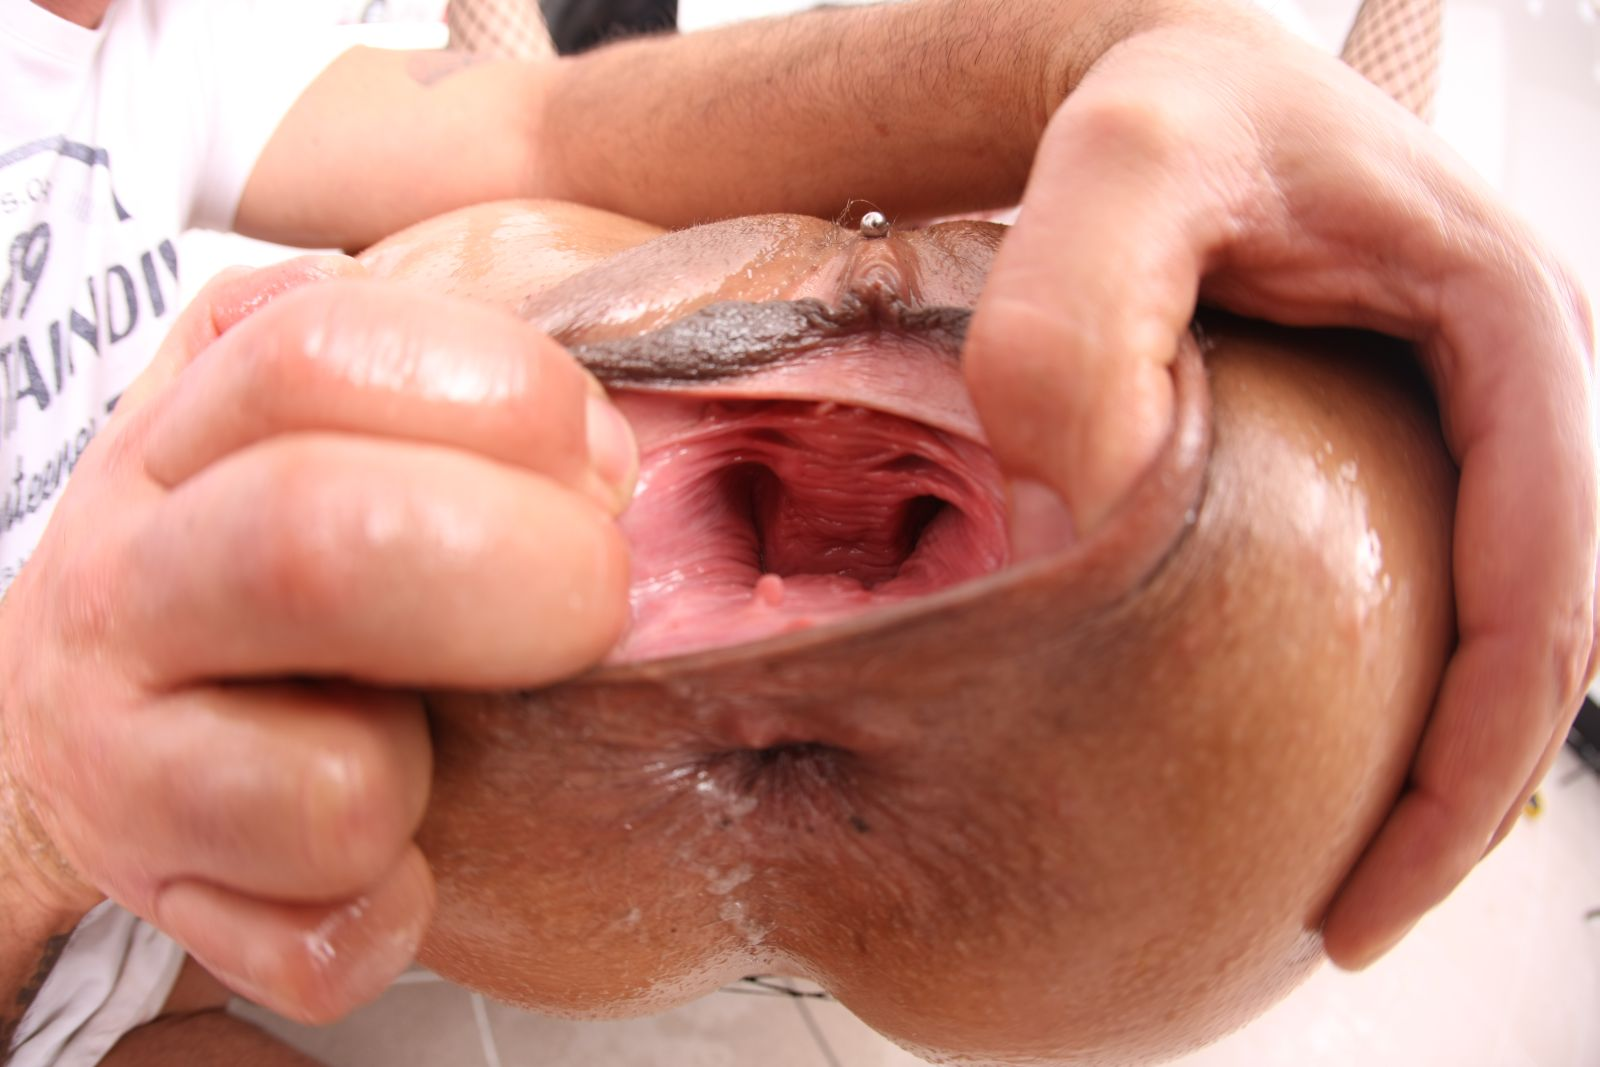 Extreme anal fisting close up picture agree, useful